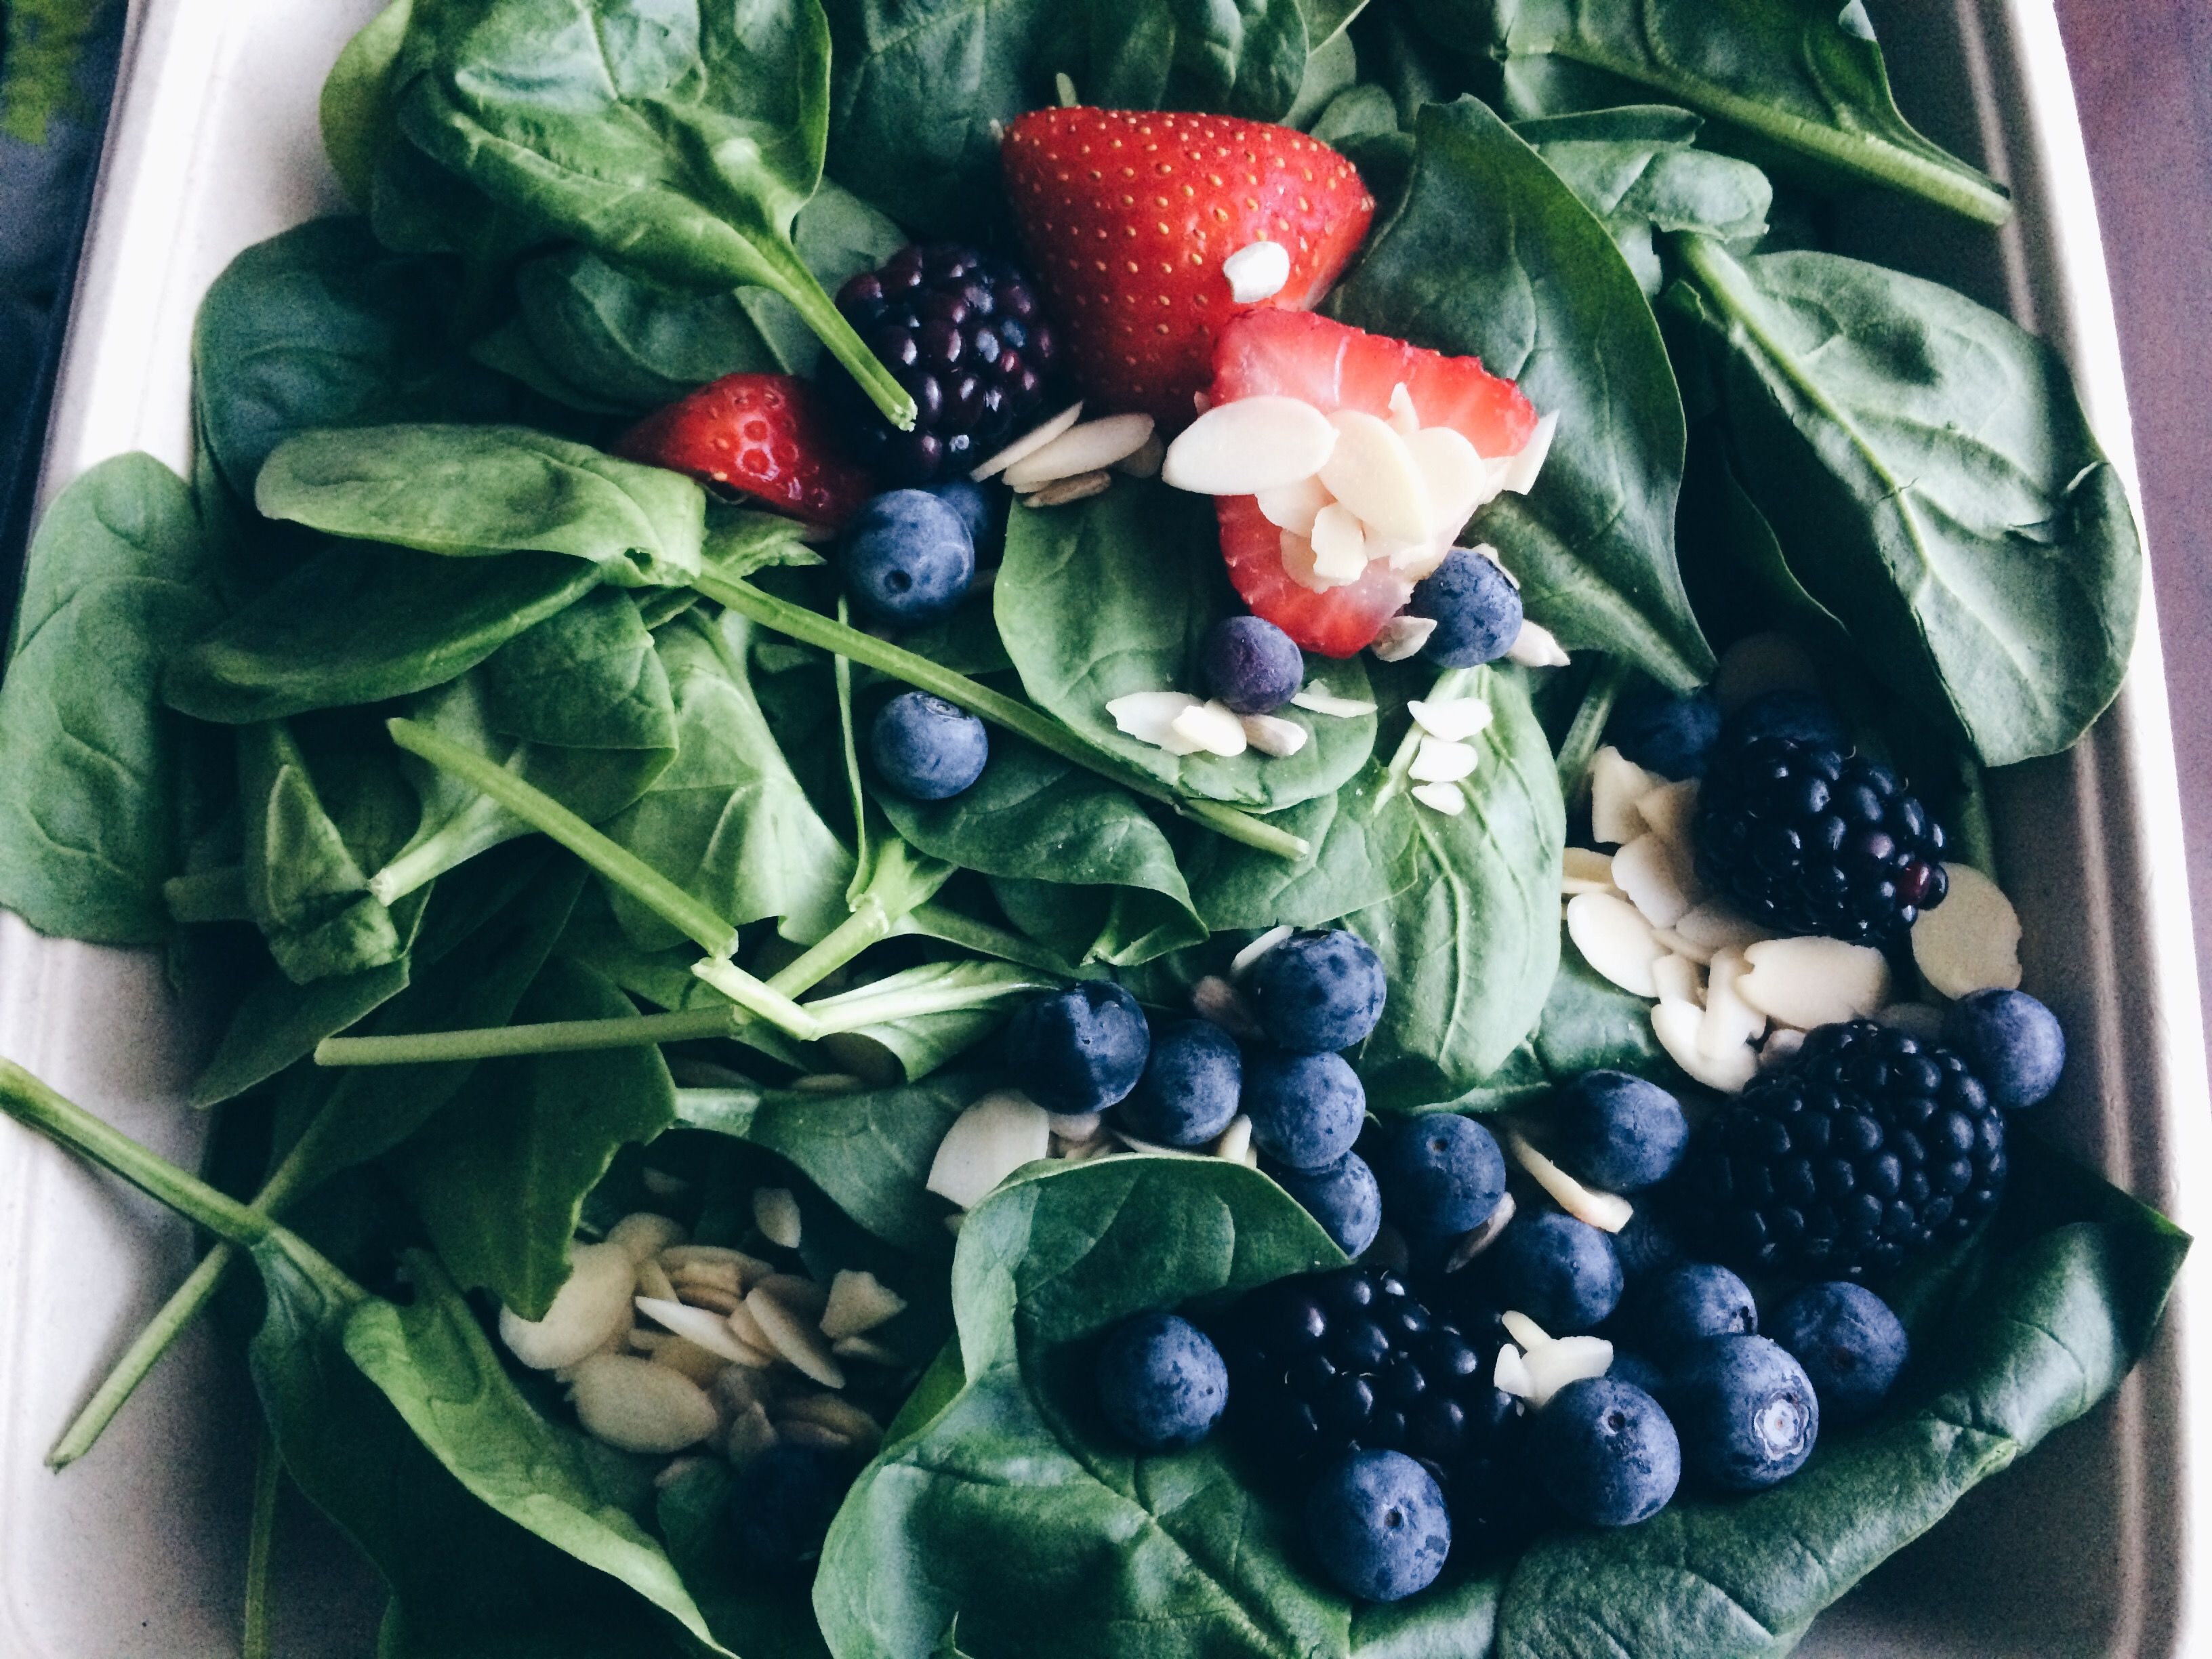 Does spinach bloat you